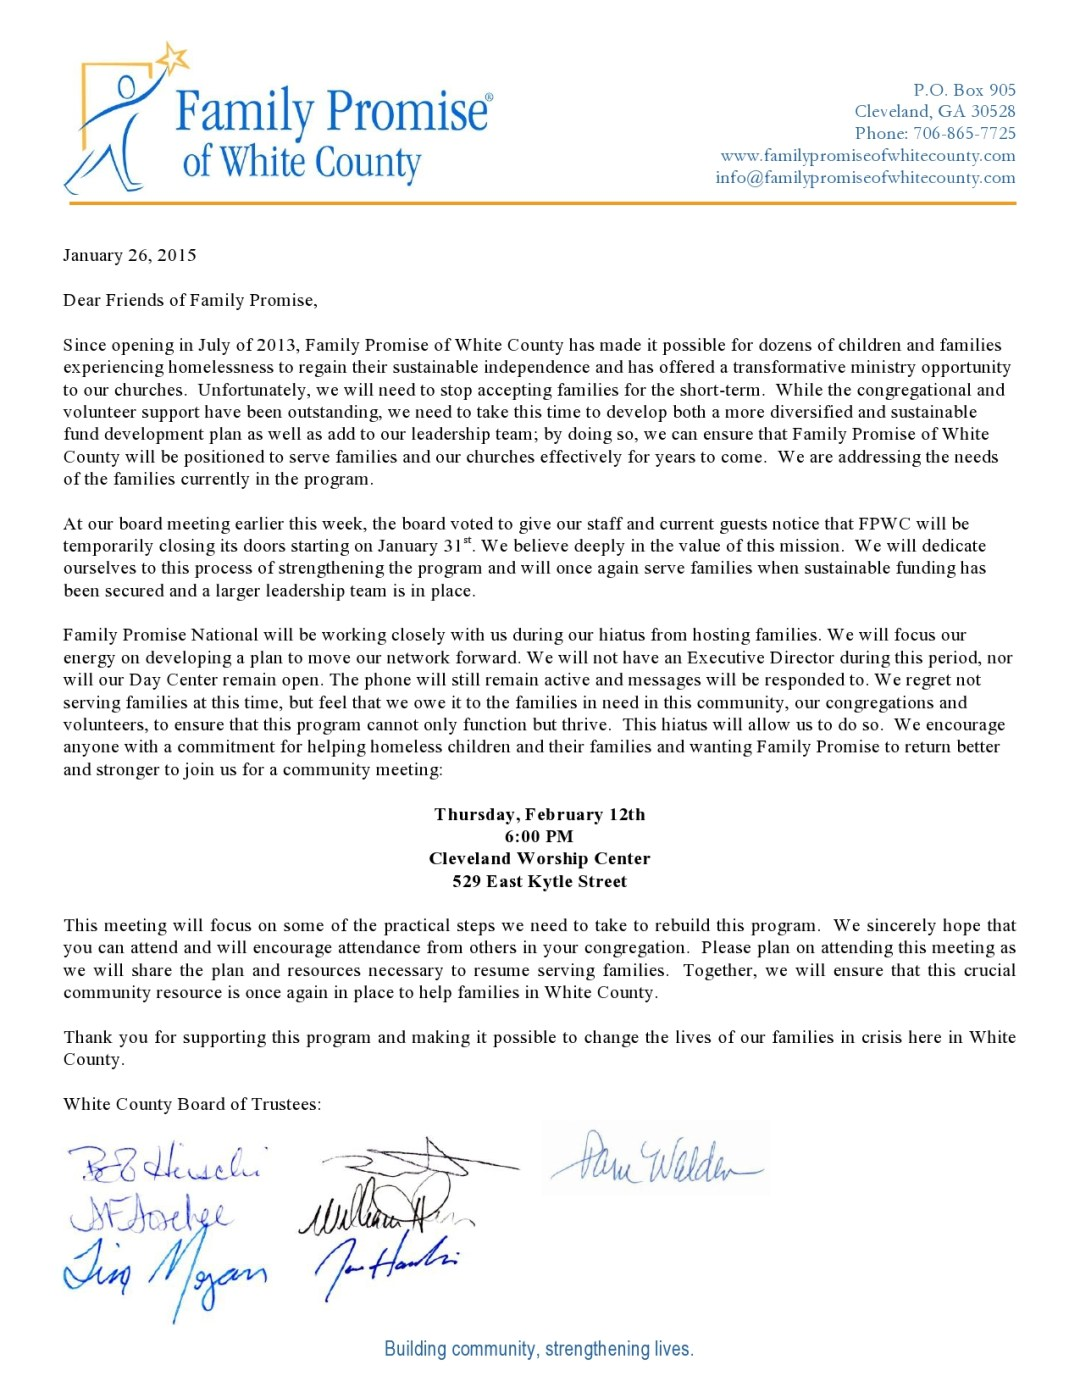 Family Promise of White County Community Meeting